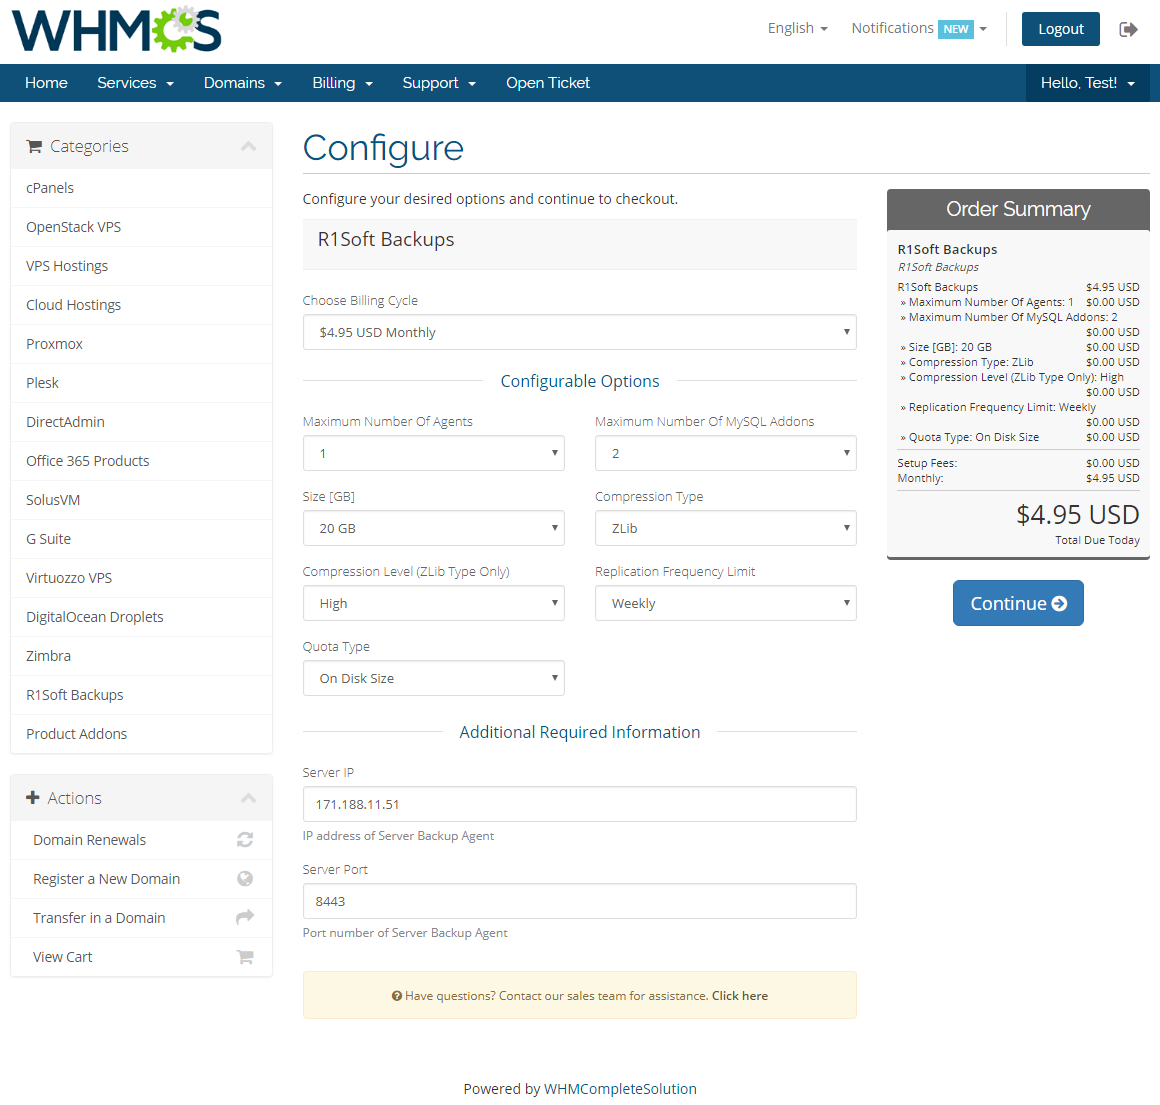 R1Soft Backups For WHMCS: Screen 3